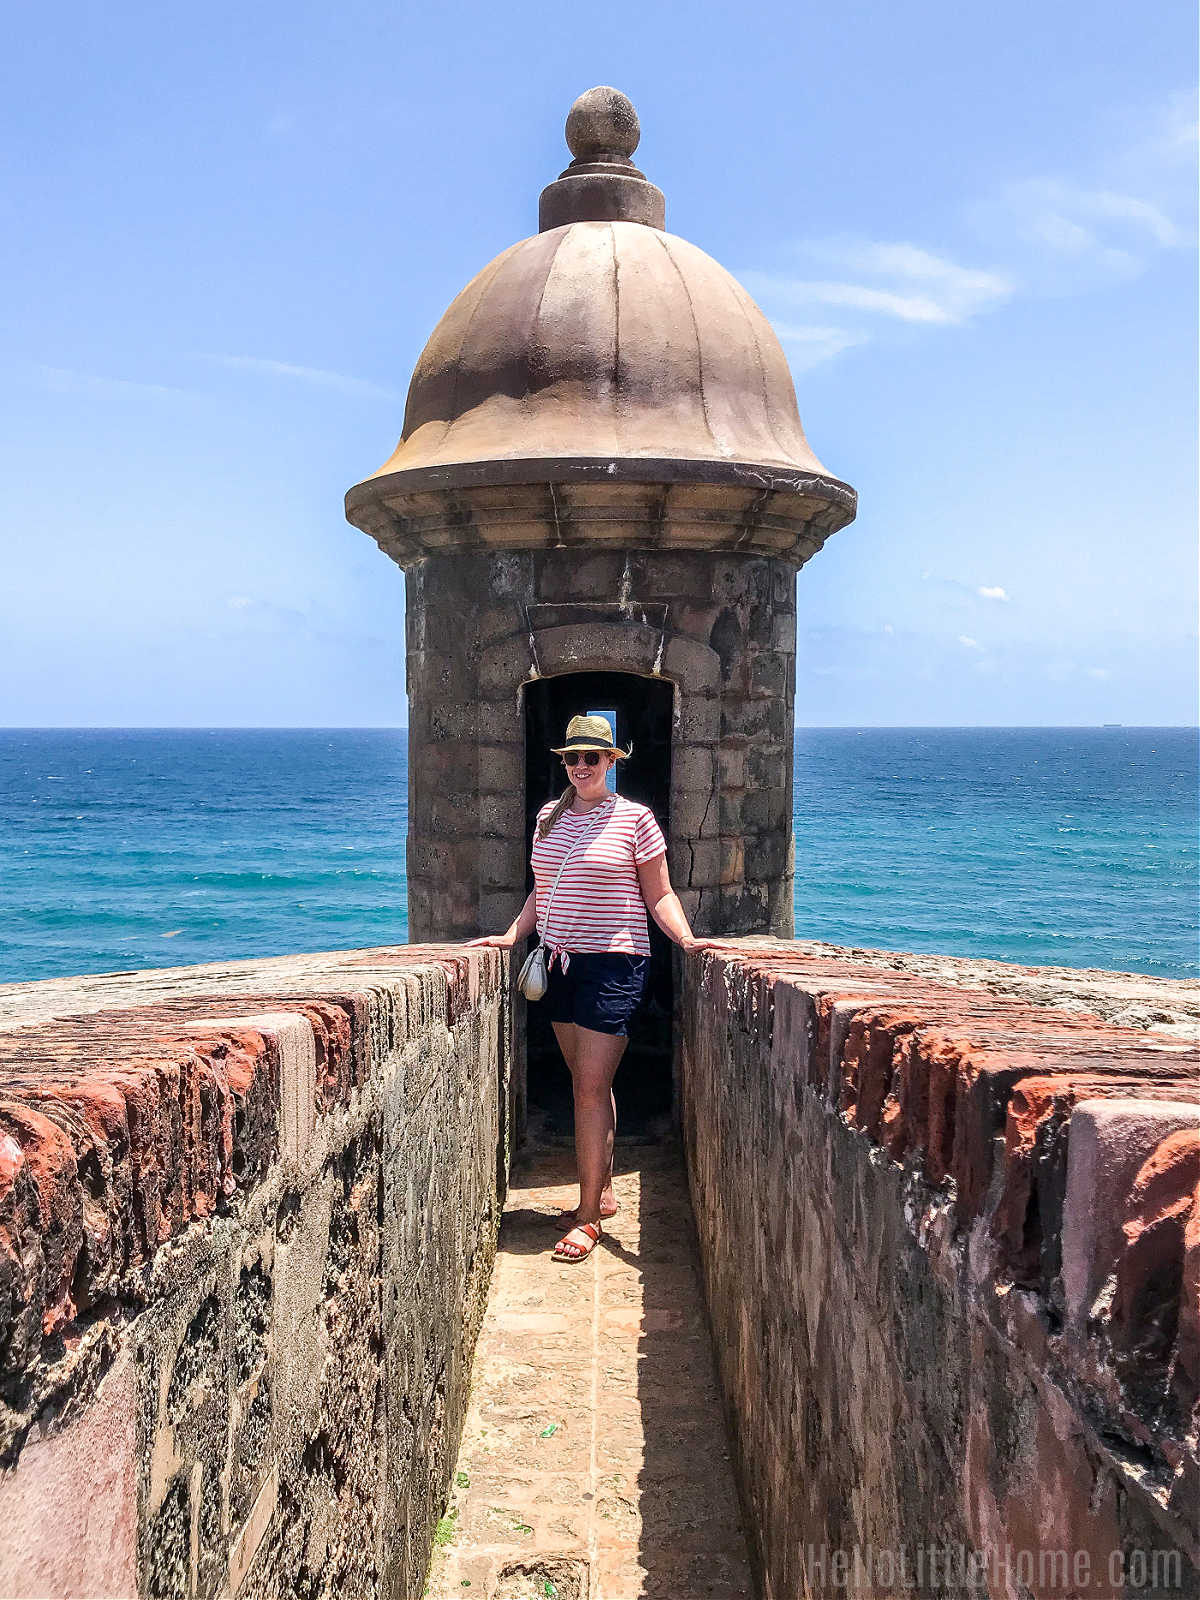 Ginnie the author standing in a garita (sentry box) at the San Juan National Historic Site.